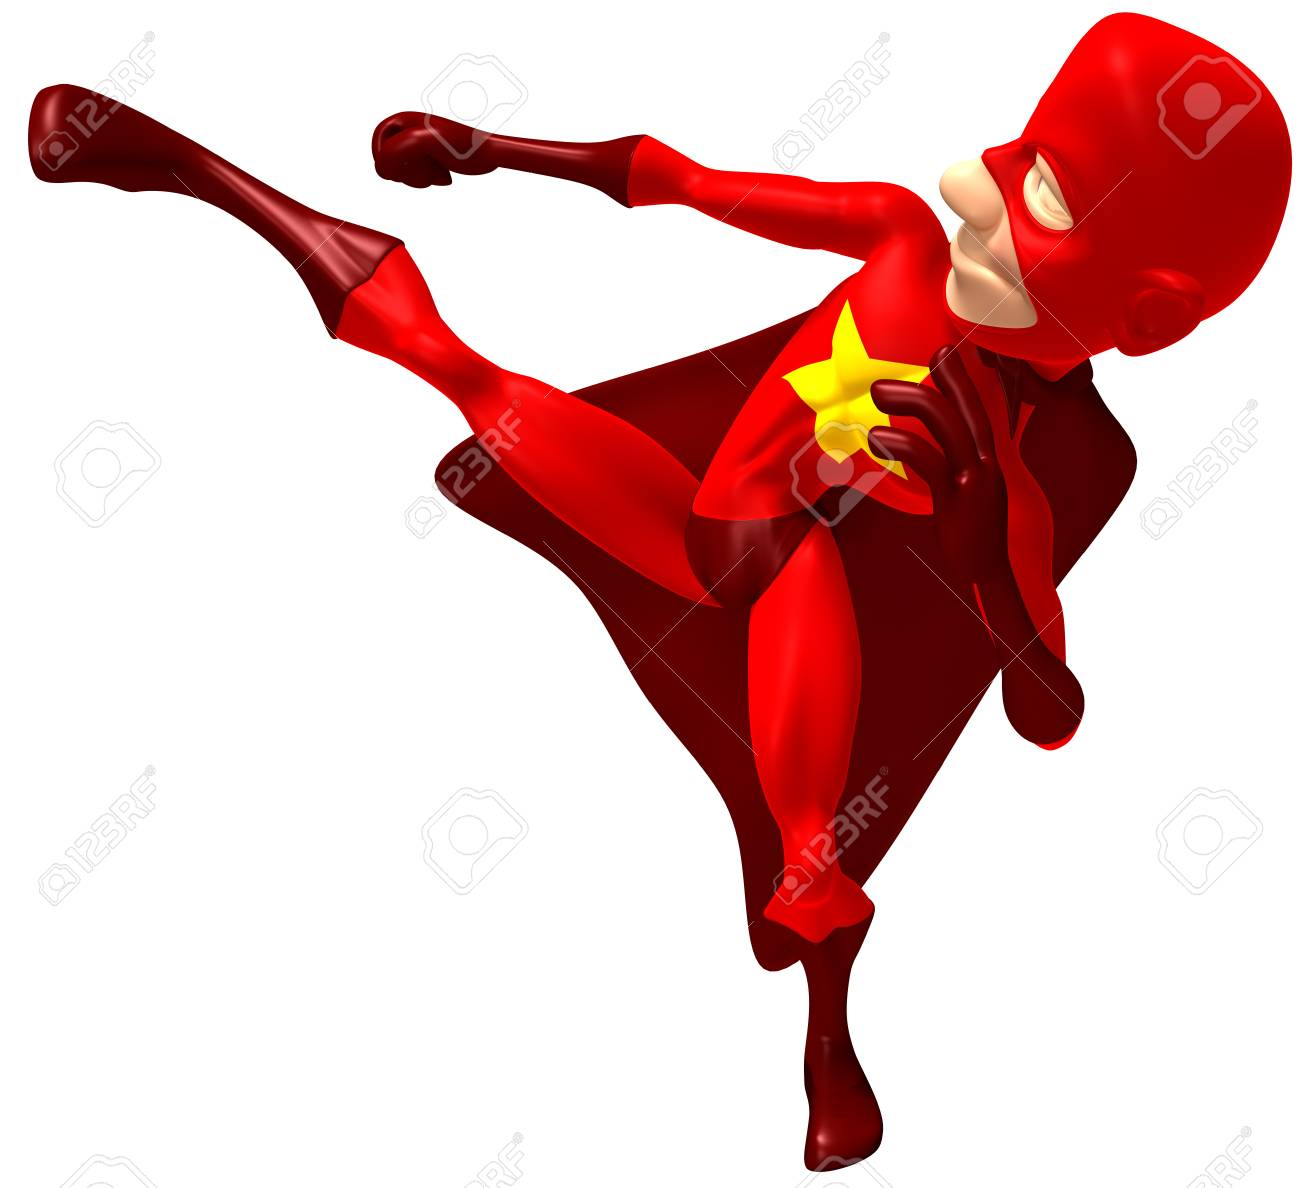 dd11eb7d7b0bd4 Cartoon superhero kicking Stock Photo - 80690896